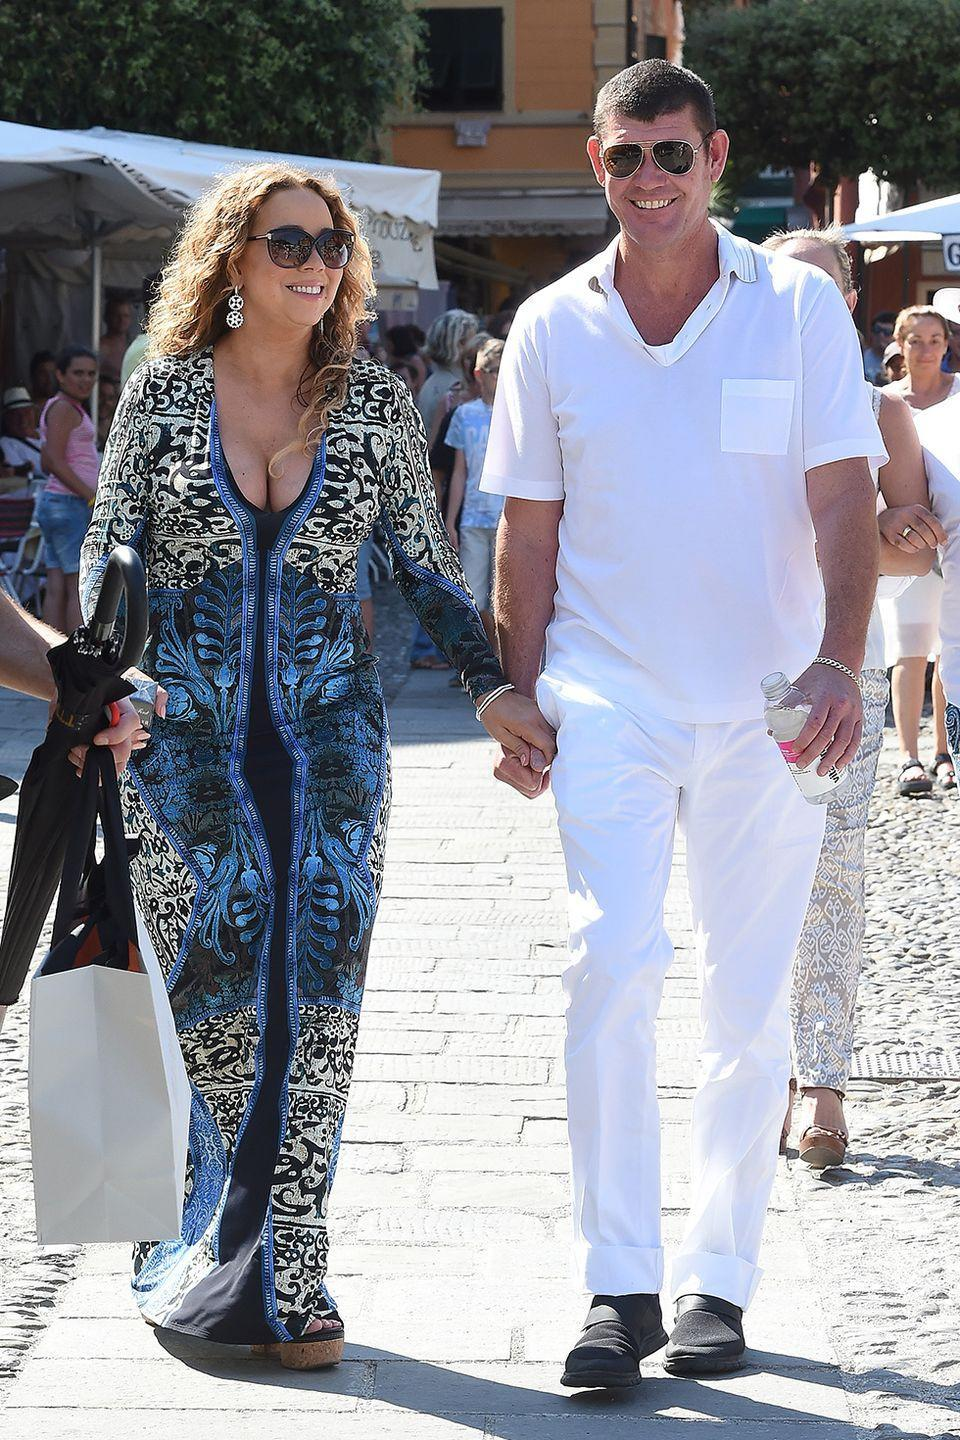 "<p>The duo became official in June 2015 and were engaged in January 2016 with a whopping 35-carat ring in New York City, according to <em><a class=""link rapid-noclick-resp"" href=""https://people.com/music/mariah-carey-james-packer-relationship-timeline-early-sizzle-final-fizzle/"" rel=""nofollow noopener"" target=""_blank"" data-ylk=""slk:People"">People</a></em>. They broke up that year after an epic blowout on vacation in Greece.</p>"